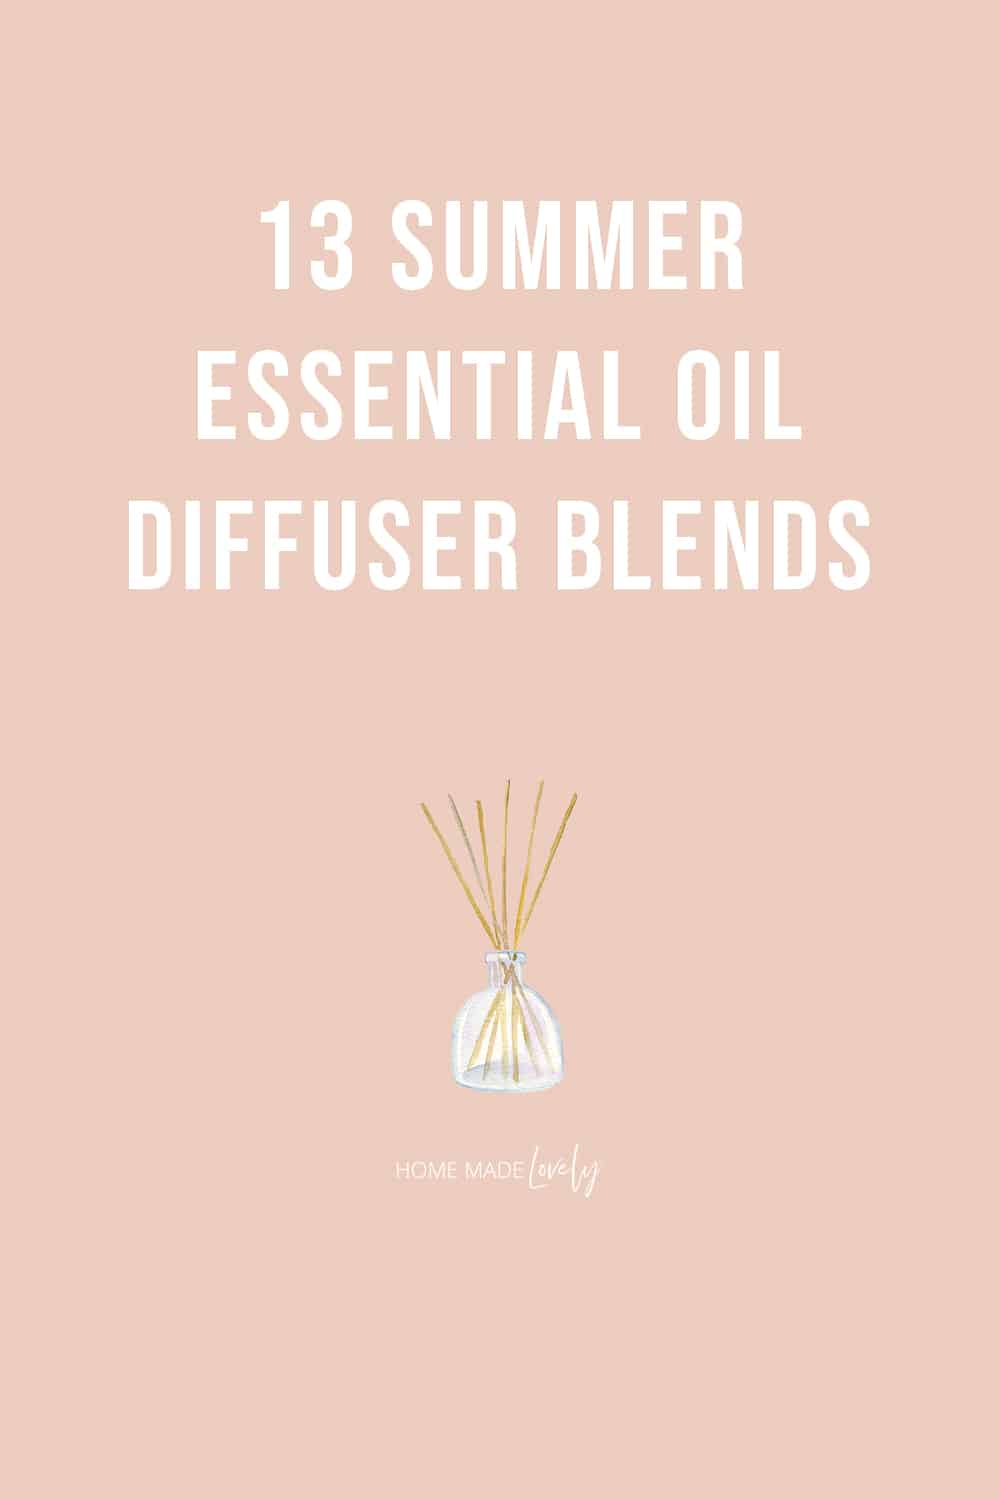 13 Summer Essential Oil Blends + Free Printable Diffuser Blends